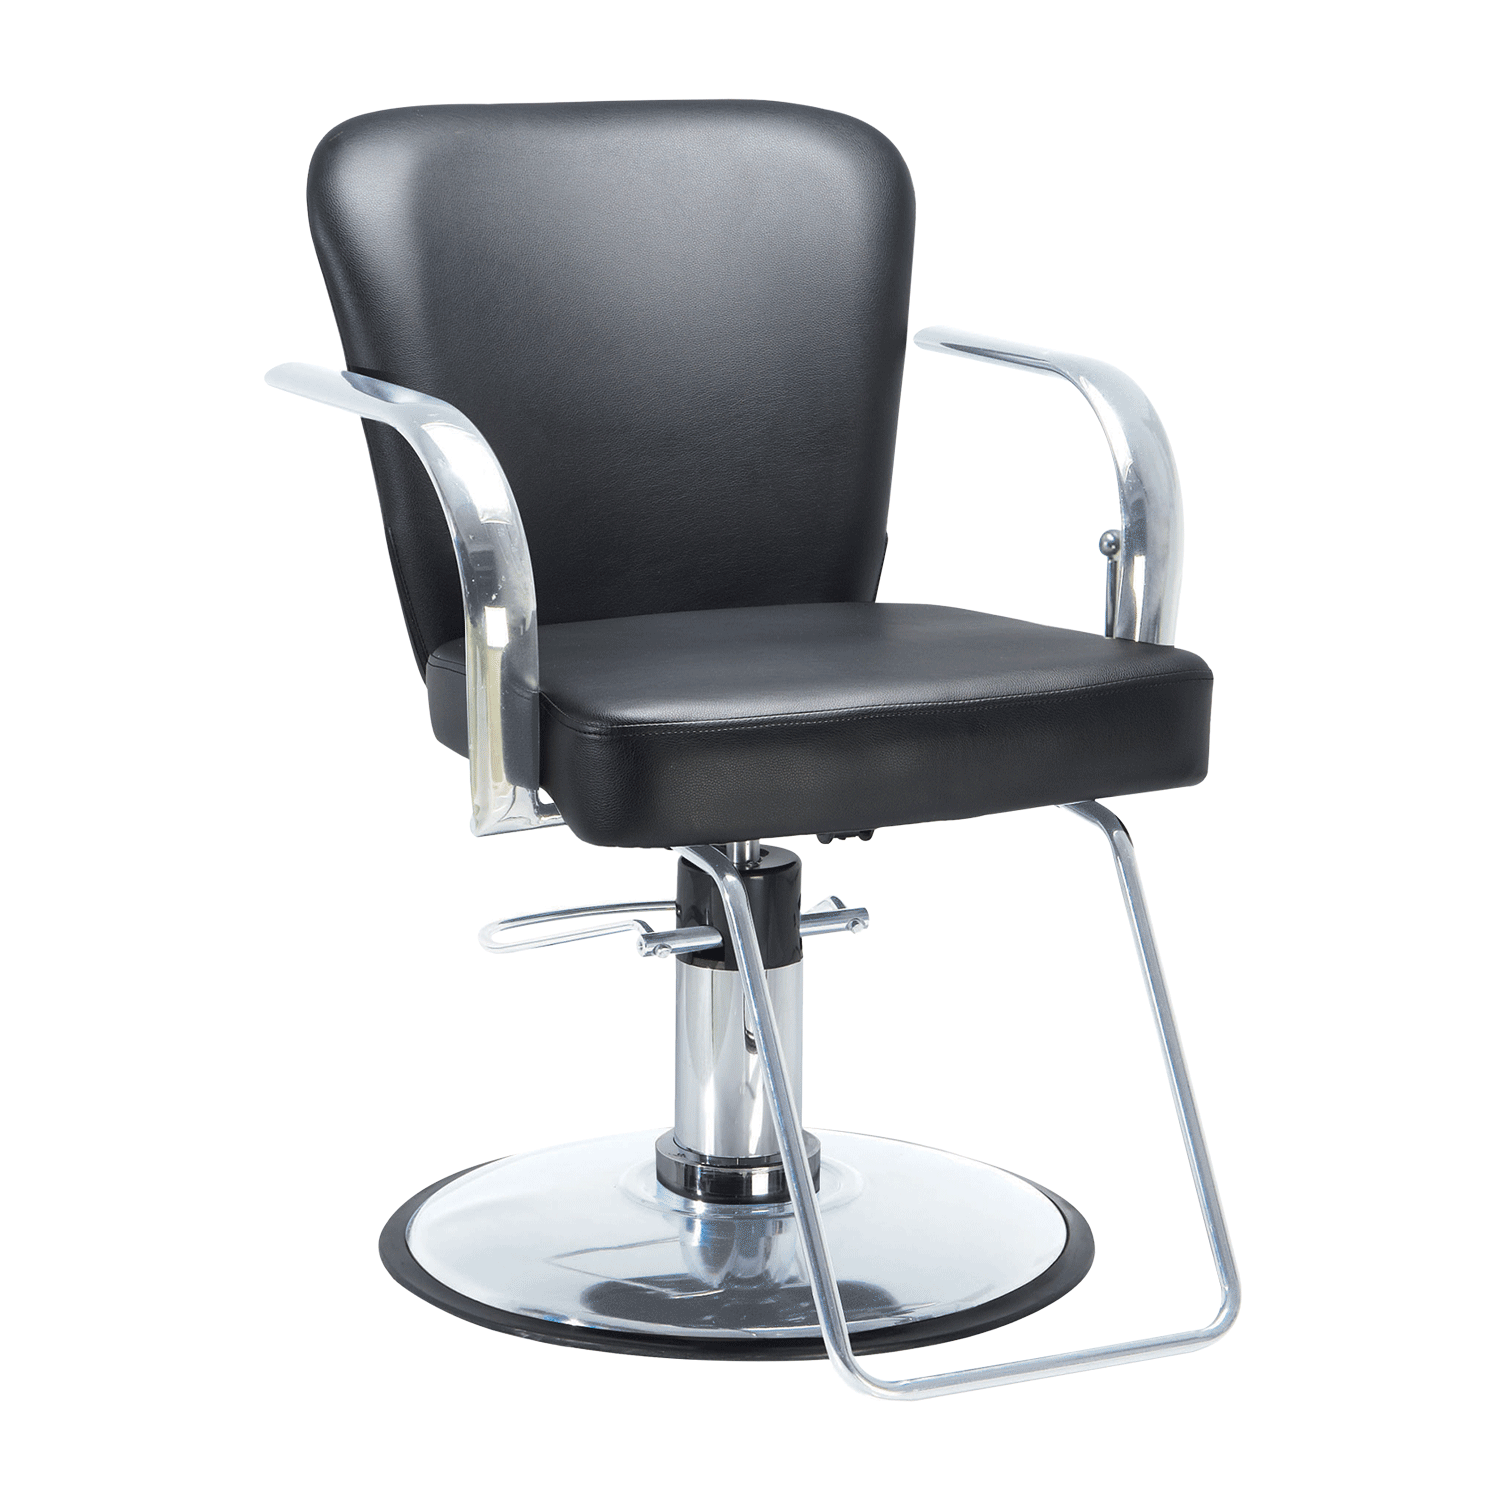 all purpose salon chairs reclining wooden folding directors chair dryer stools sally beauty chromium cr24 11 styling with chrome base